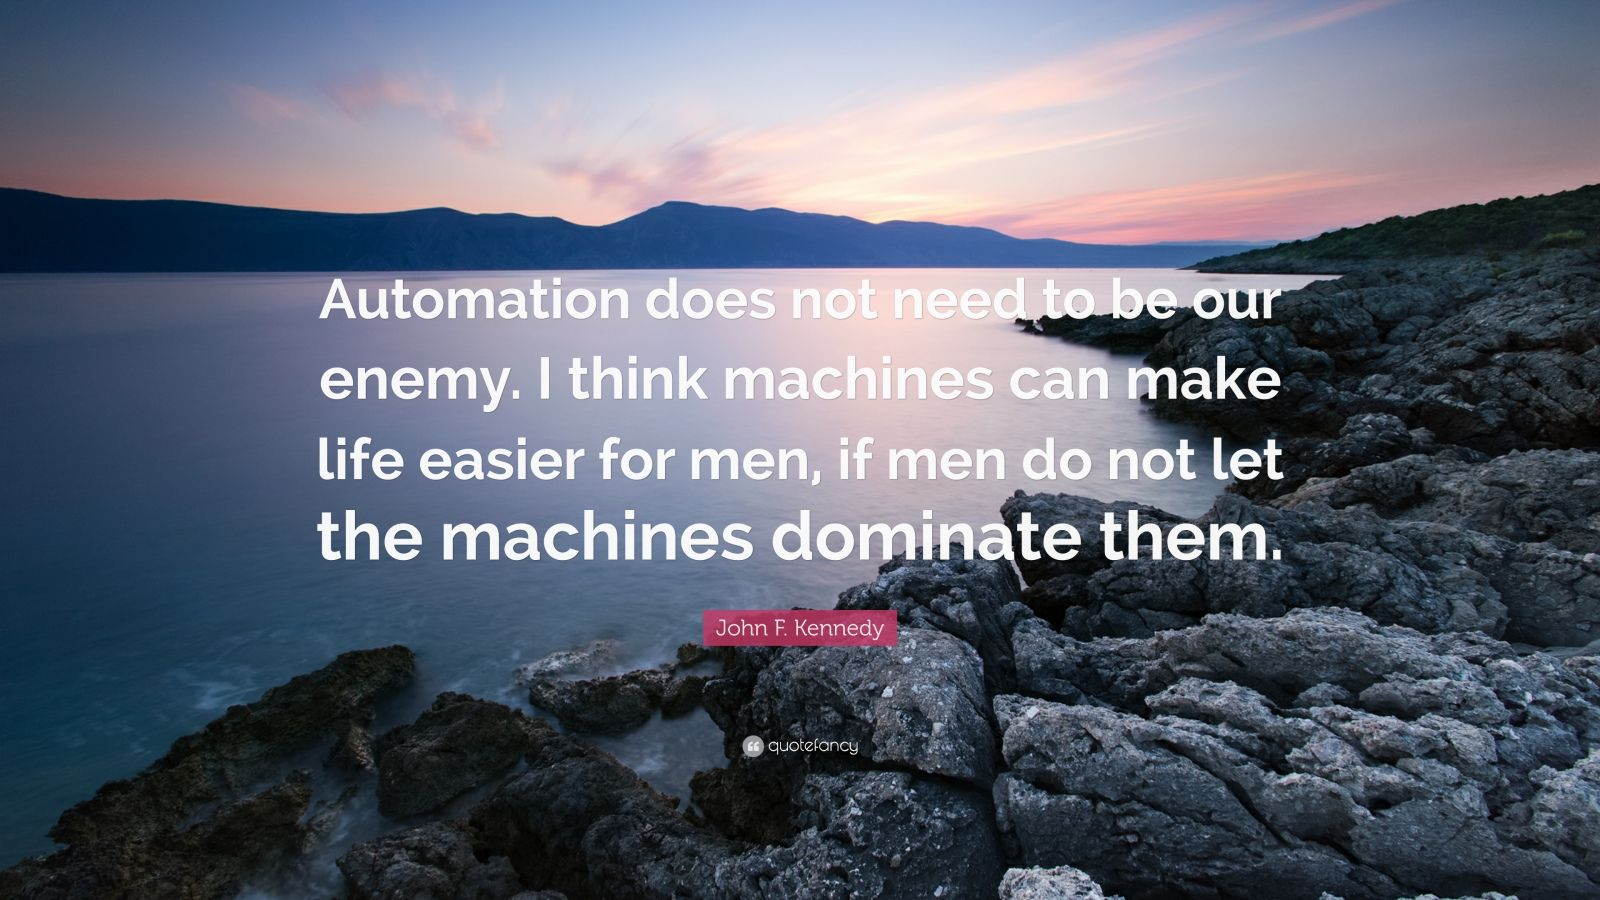 """John F. Kennedy Quote: """"Automation does not need to be our enemy. I think machines can make life easier for men, if men do not let the machines dominate them."""""""